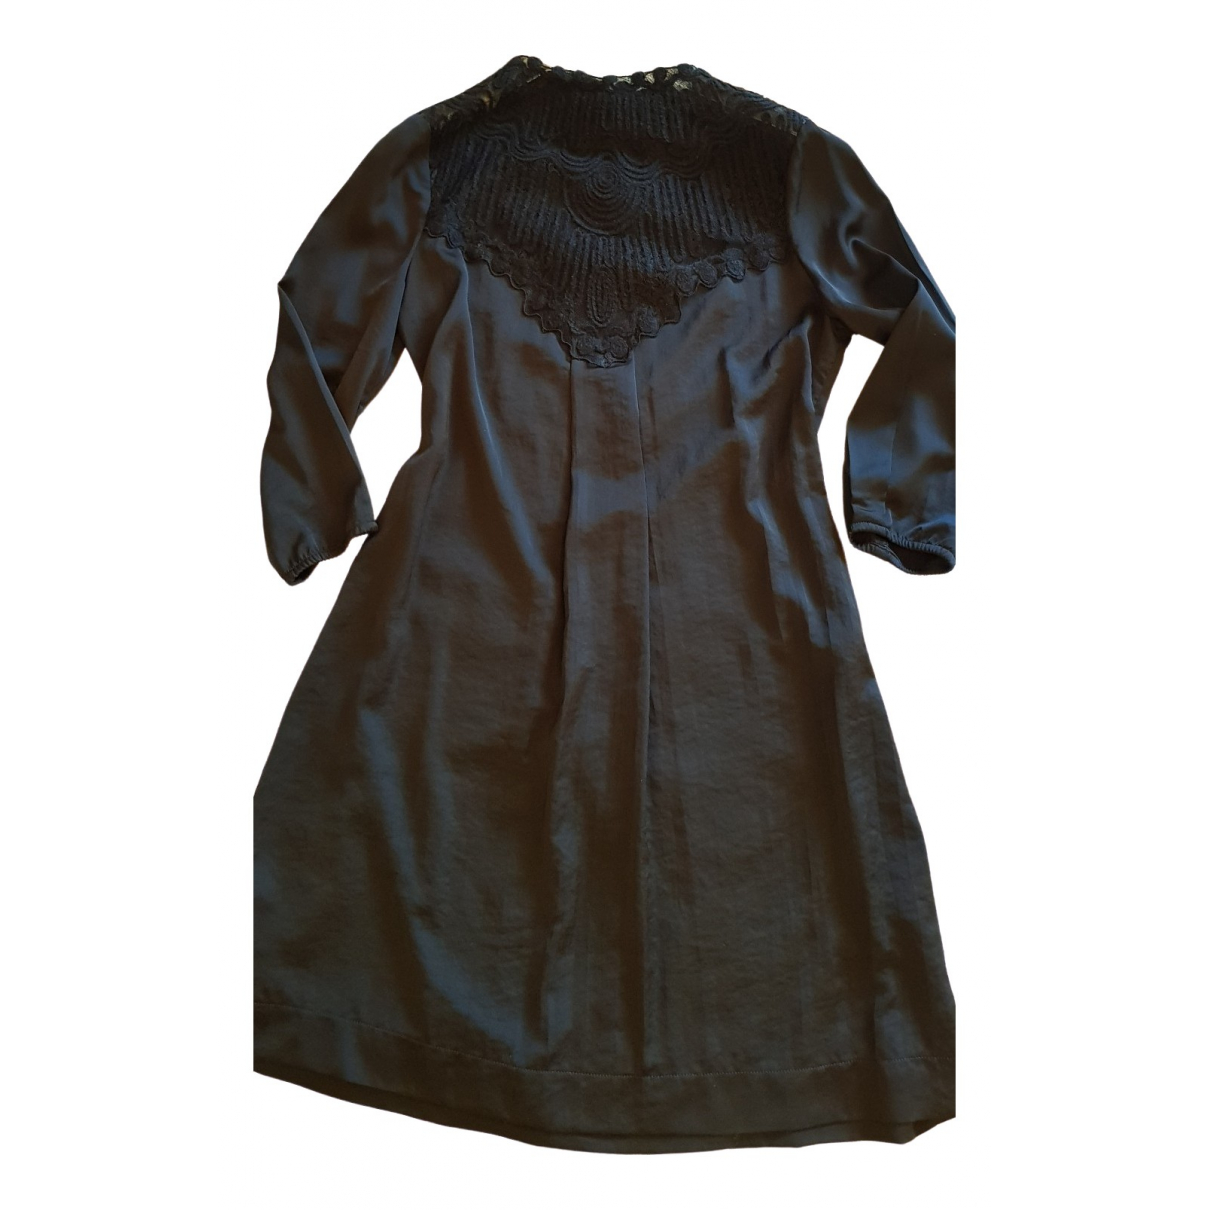 Patrizia Pepe \N Black dress for Women 42 IT